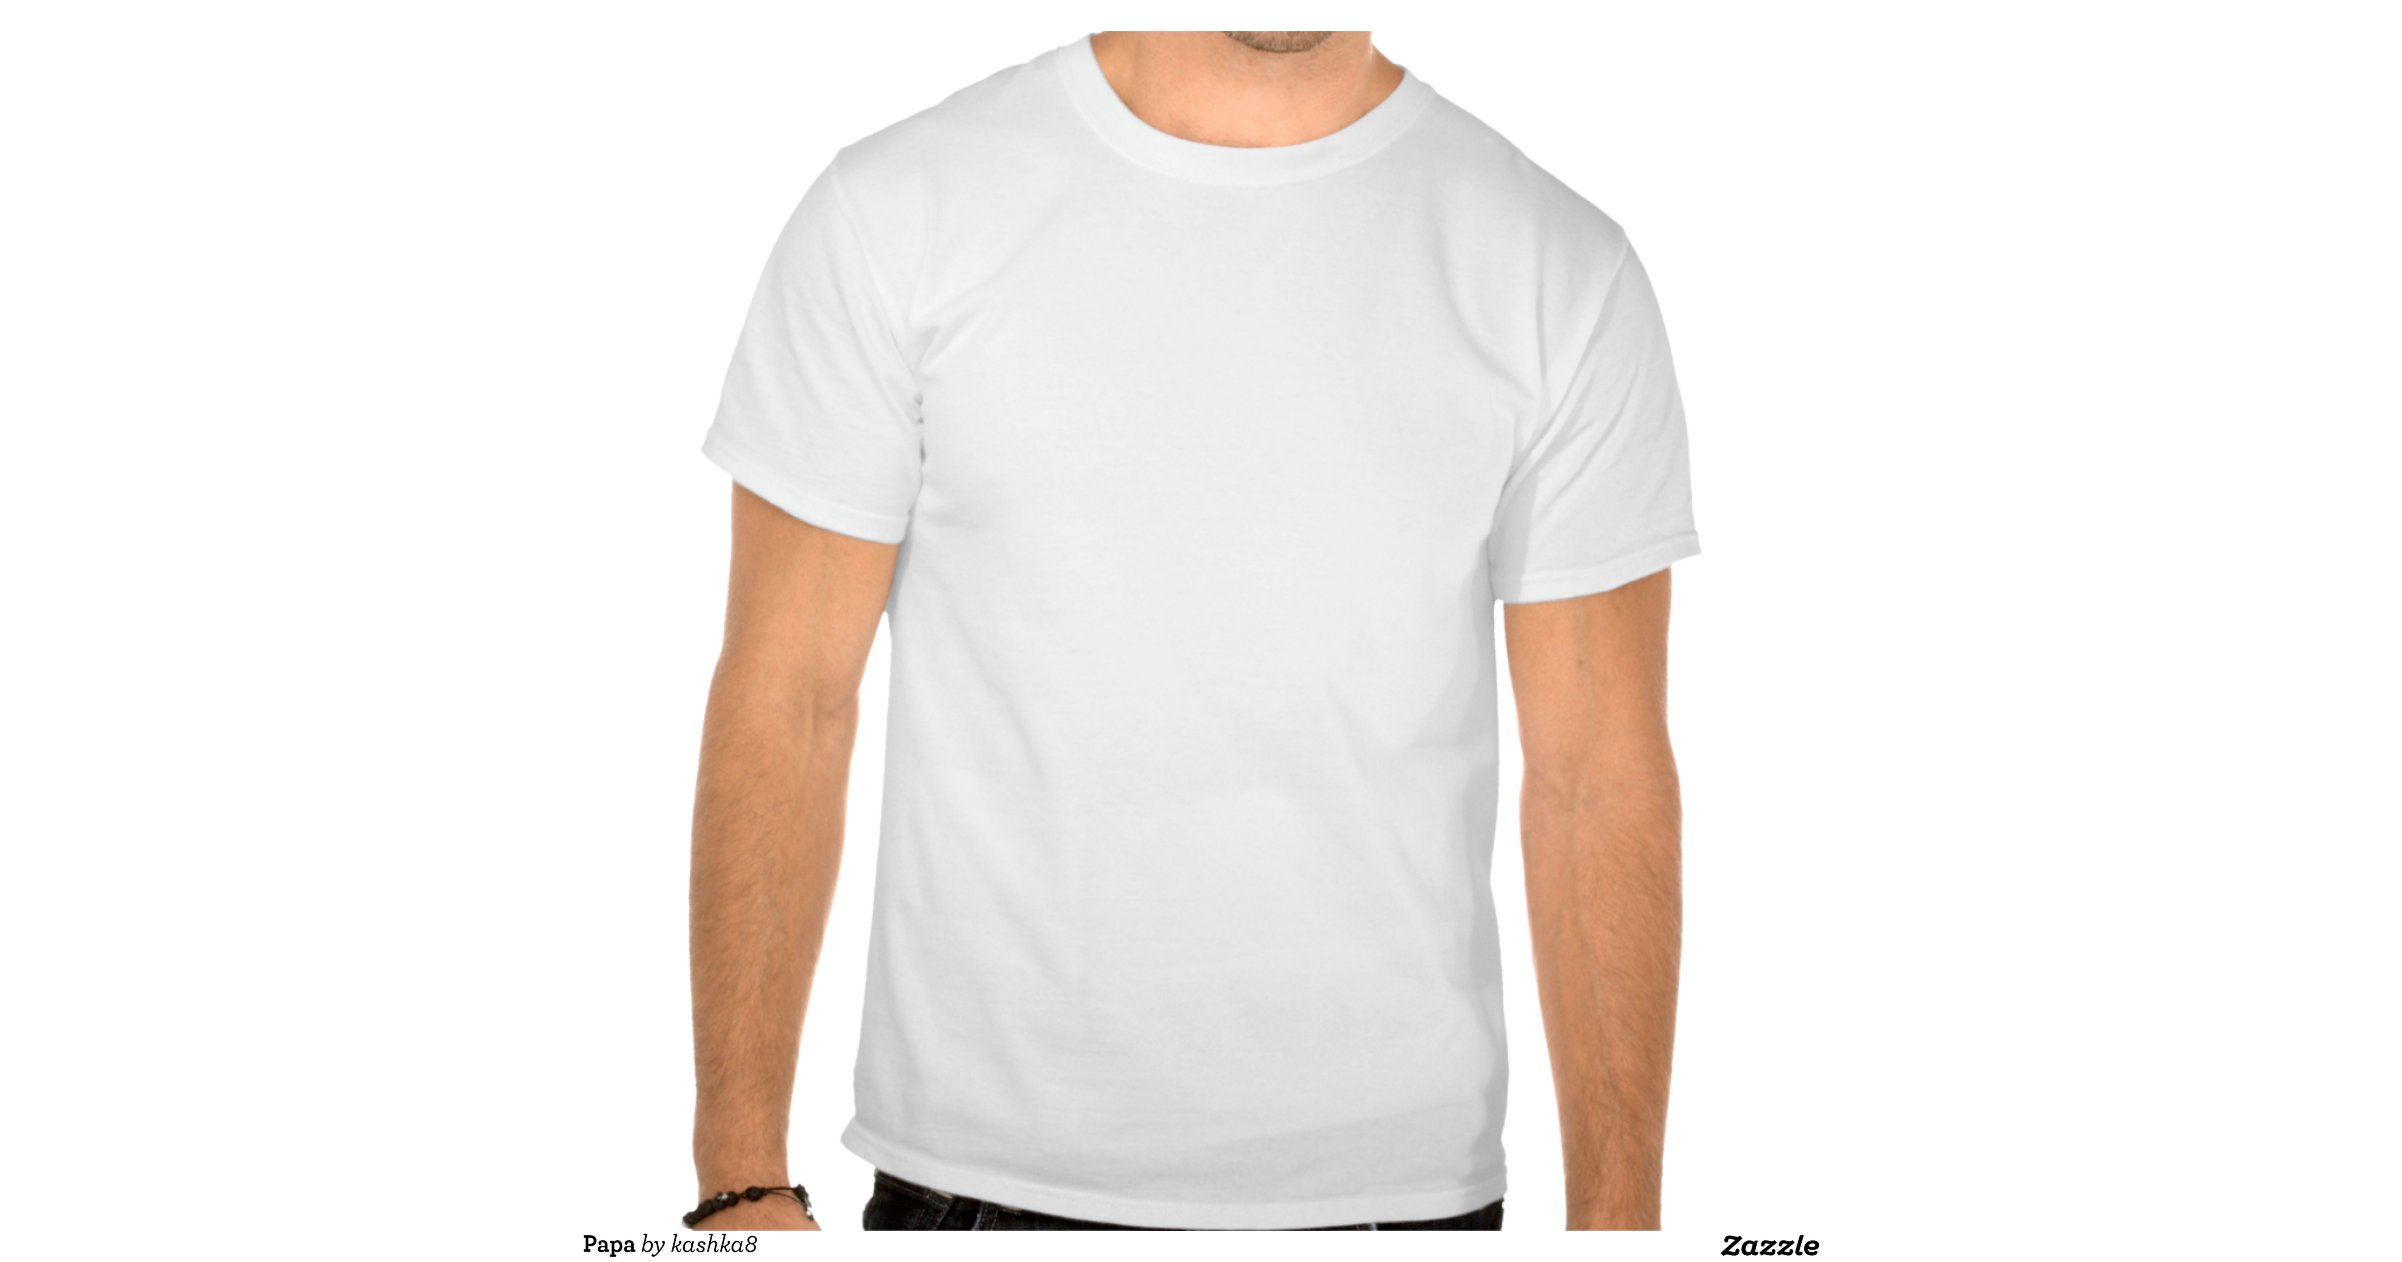 papa tee shirts zazzle. Black Bedroom Furniture Sets. Home Design Ideas